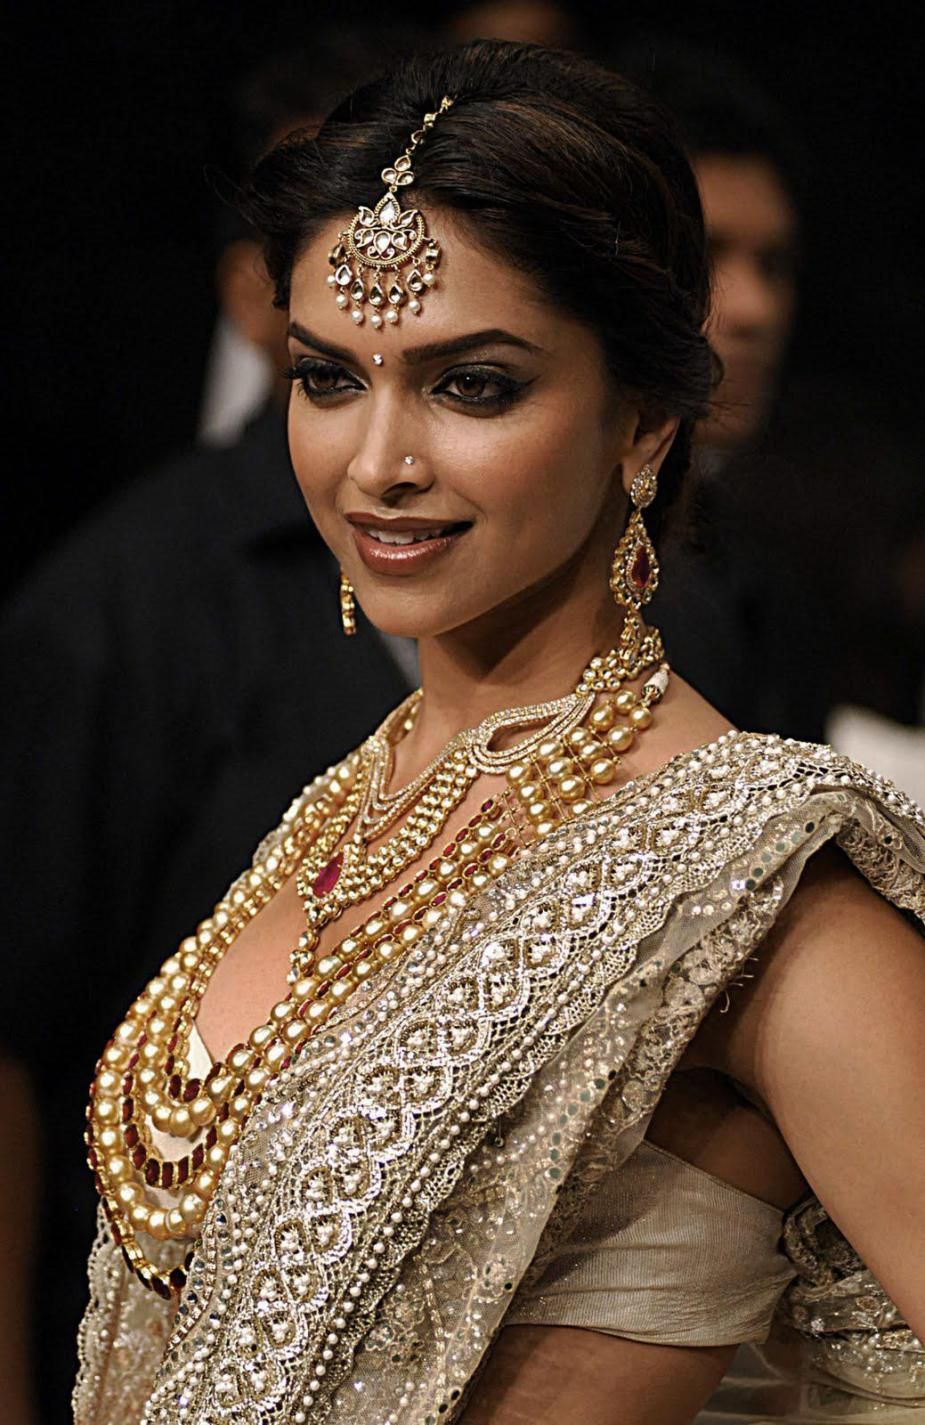 Actress Deepika Padukone Wearing Bridal Hairstyle ...